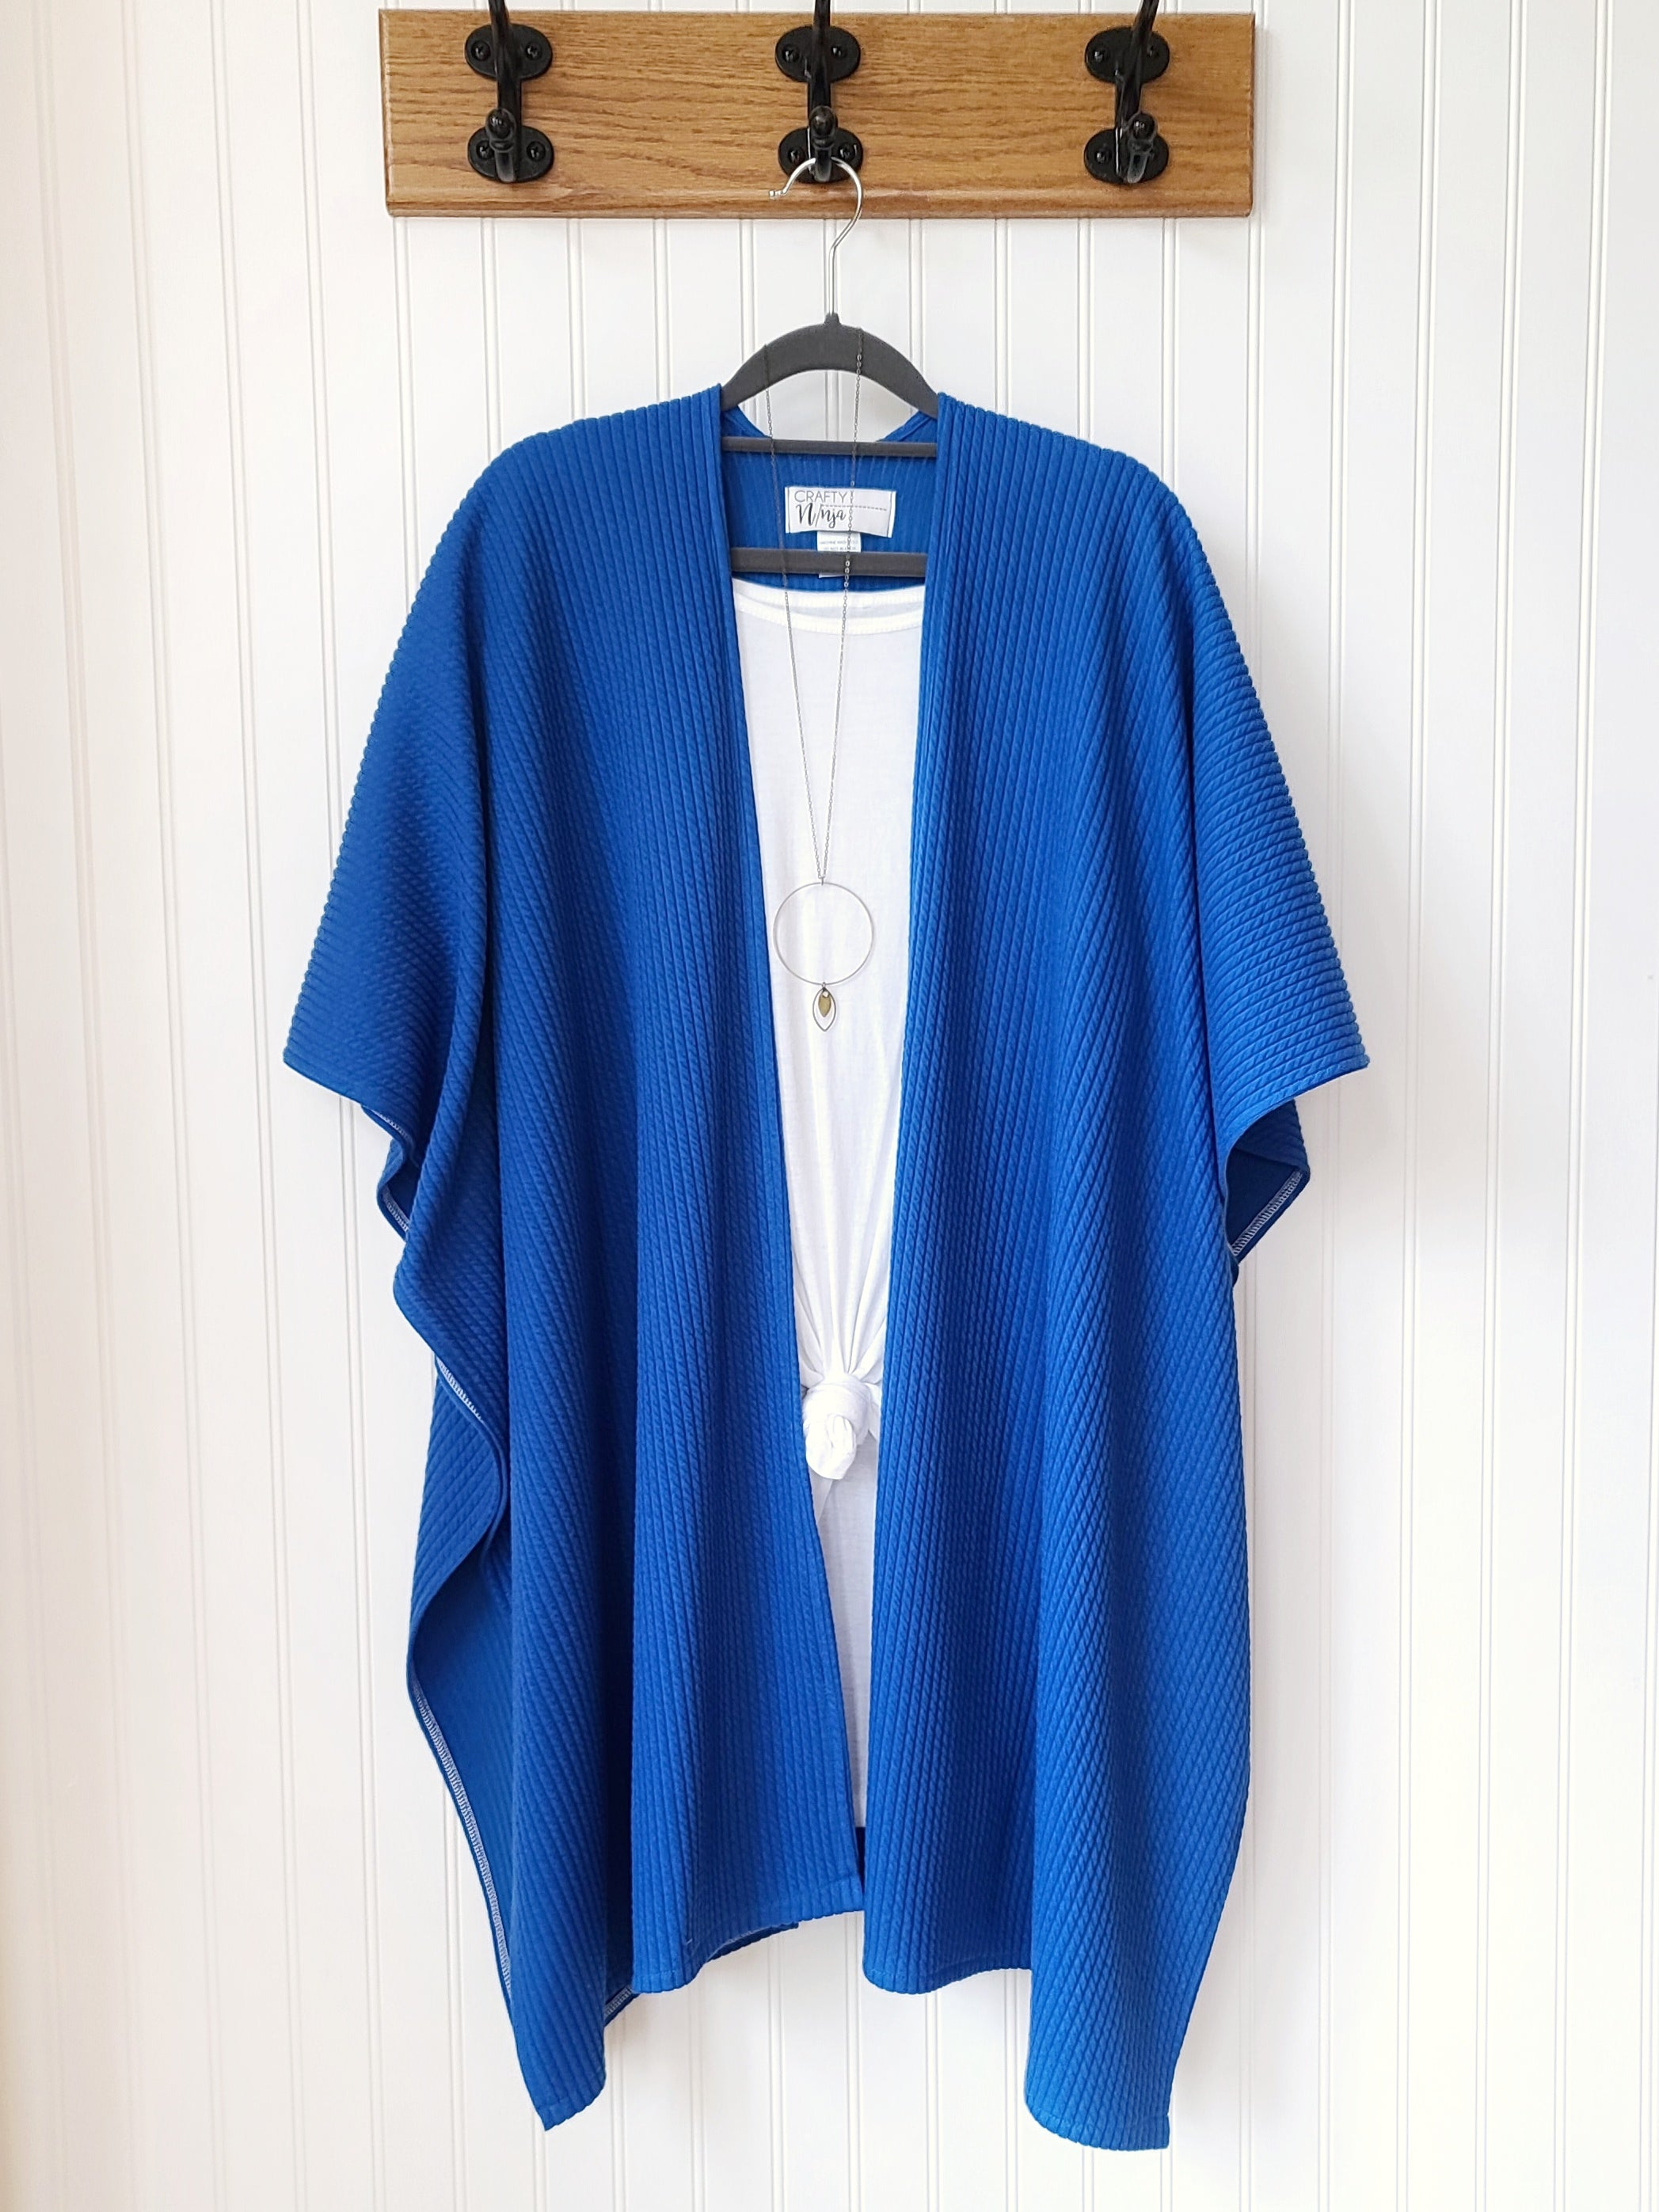 Skye-Blue Sweater Weight Kimono Wrap